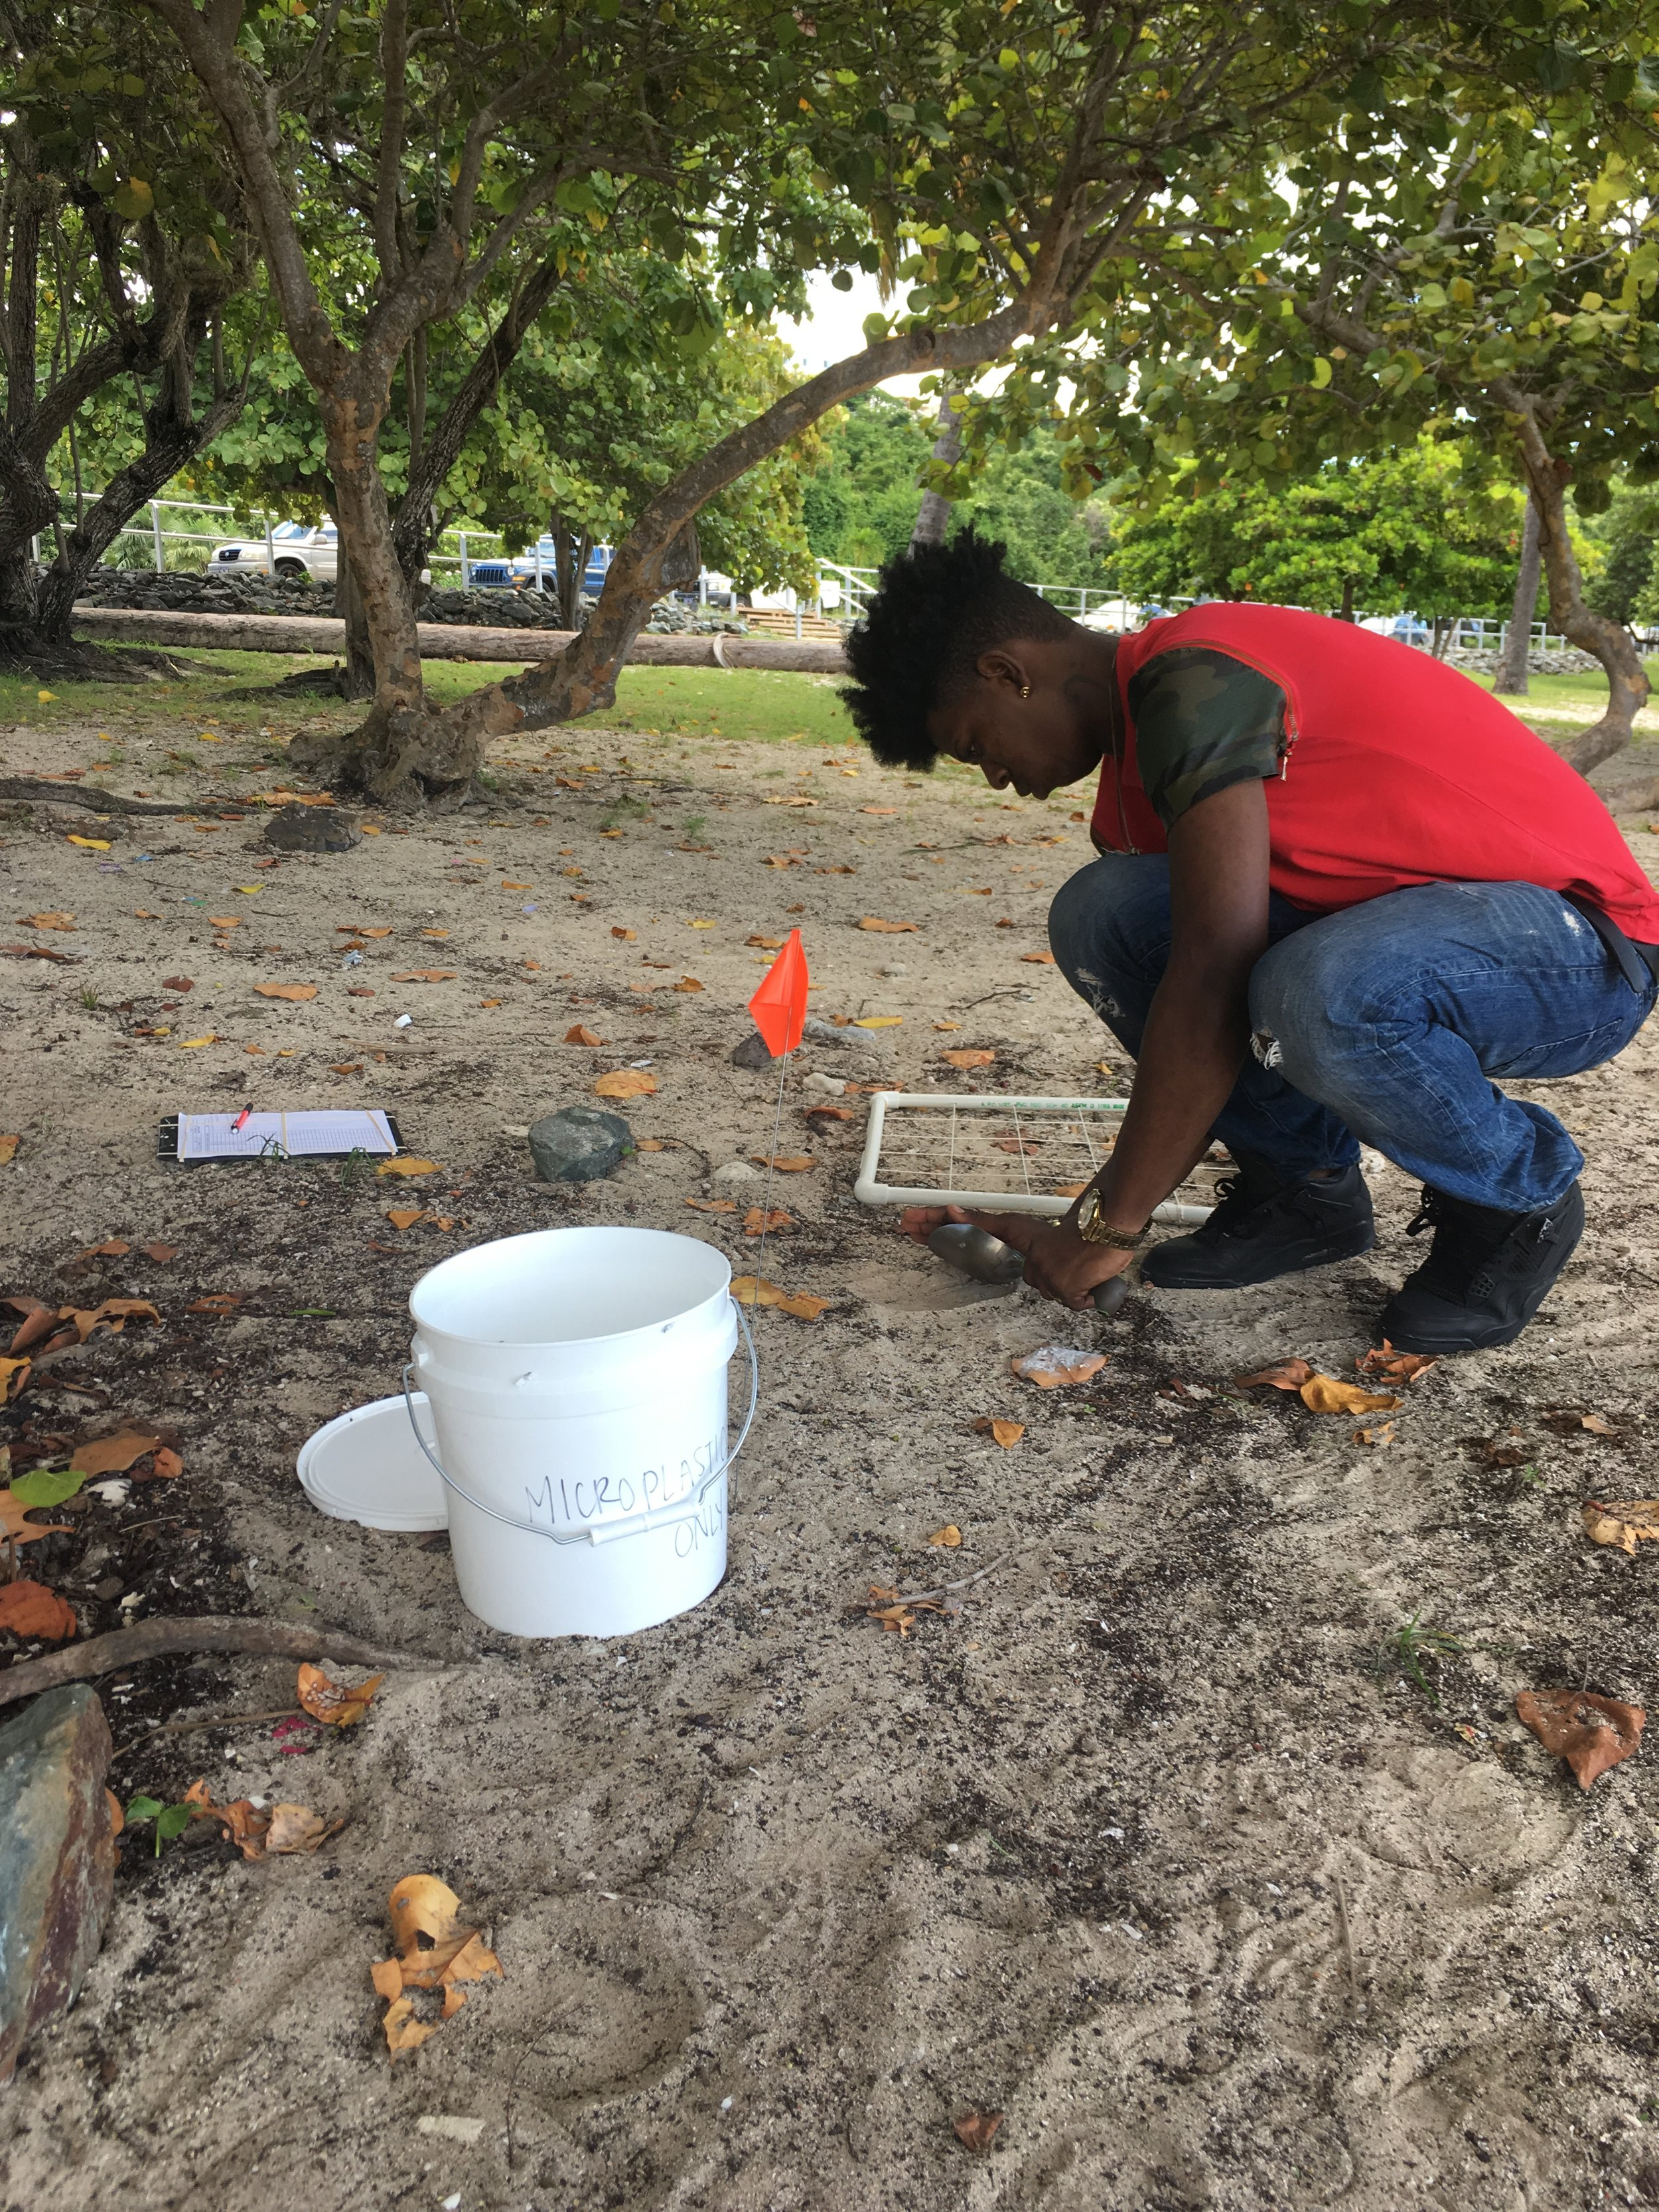 D'Kai Joseph,UVI undergraduate volunteer,collects the top layer of sand 1 cm deep. The white quadrant frame seen here provides a guide to the sample area. The sand is collected into the labeled bucket and taken to the lab for processing. It will undergo a series of density separation processes to separate plastic from natural materials.